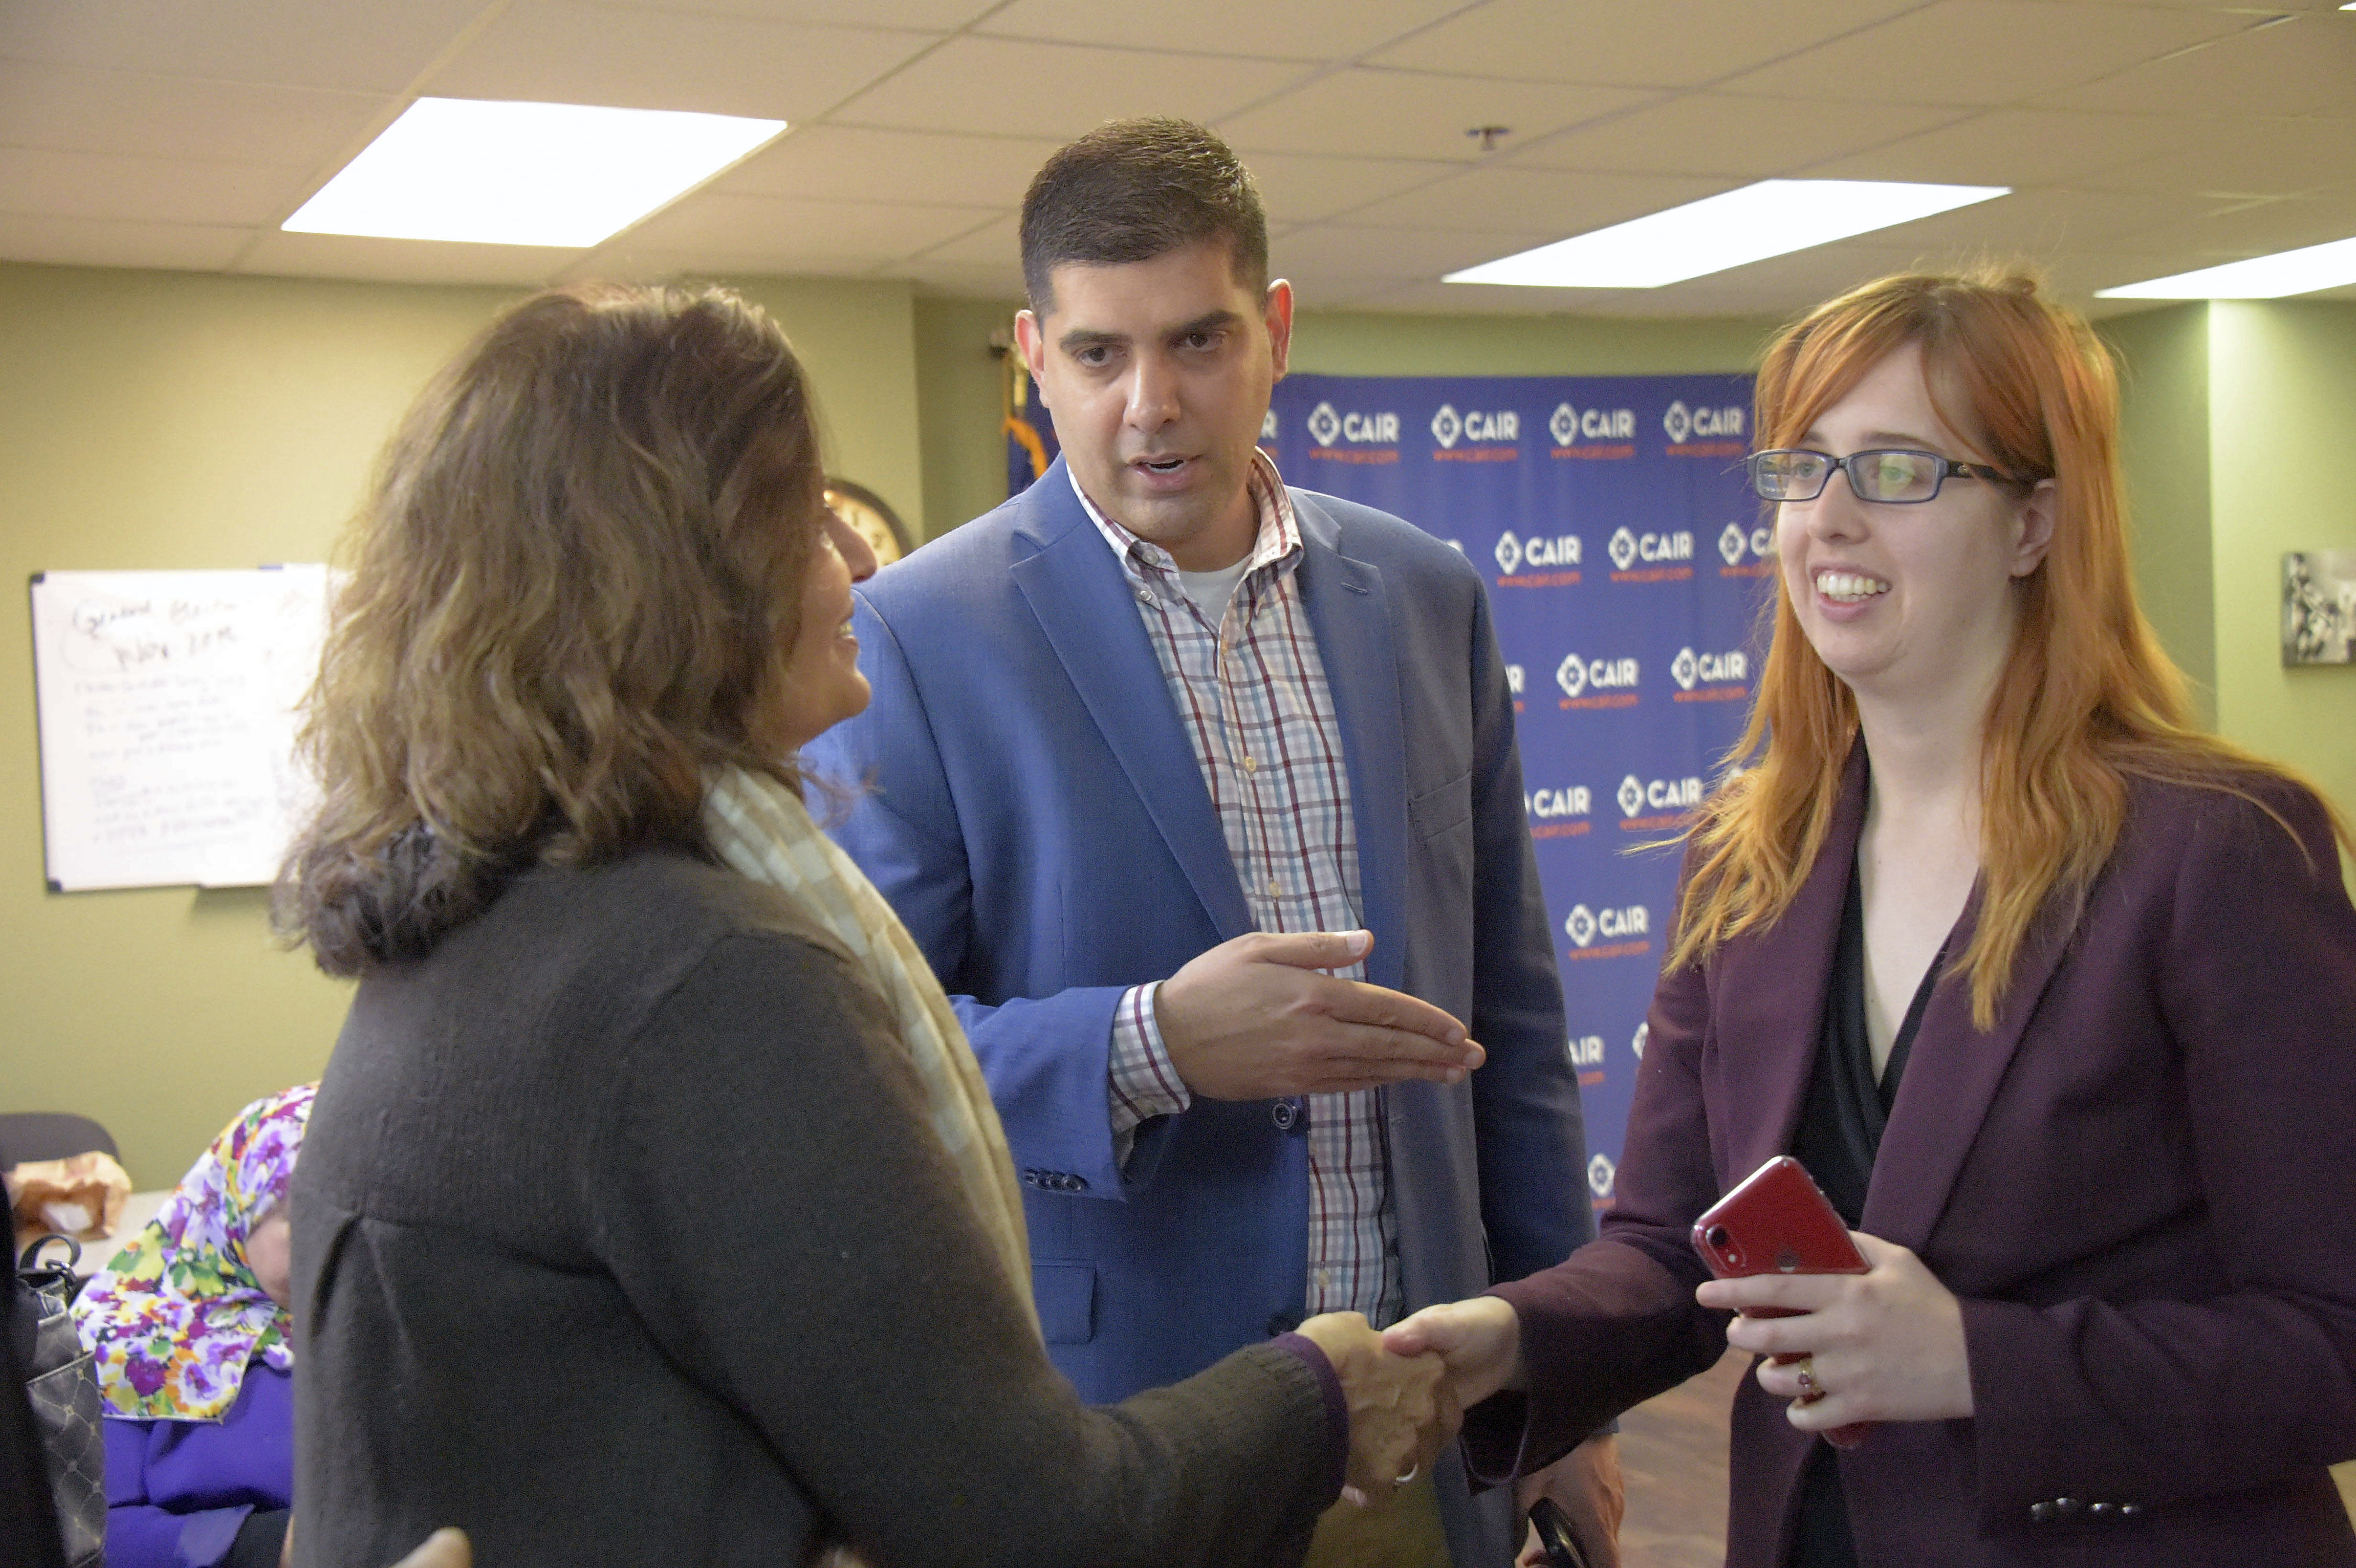 Saqib Ali introduces CAIR attorney Carolyn Homar, right, to his mother Samina Ali, following at a press conference, Wednesday, Jan. 9, 2019, in Catonsville, Md., announcing a legal challenge to Maryland's anti-BDS Executive Order. Maryland's ban on contracting with businesses that boycott Israel tramples on the First Amendment rights the software engineer who advocates for Palestinians, a Muslim civil rights group claims in a lawsuit filed Wednesday. (Karl Merton Ferron/The Baltimore Sun via AP)